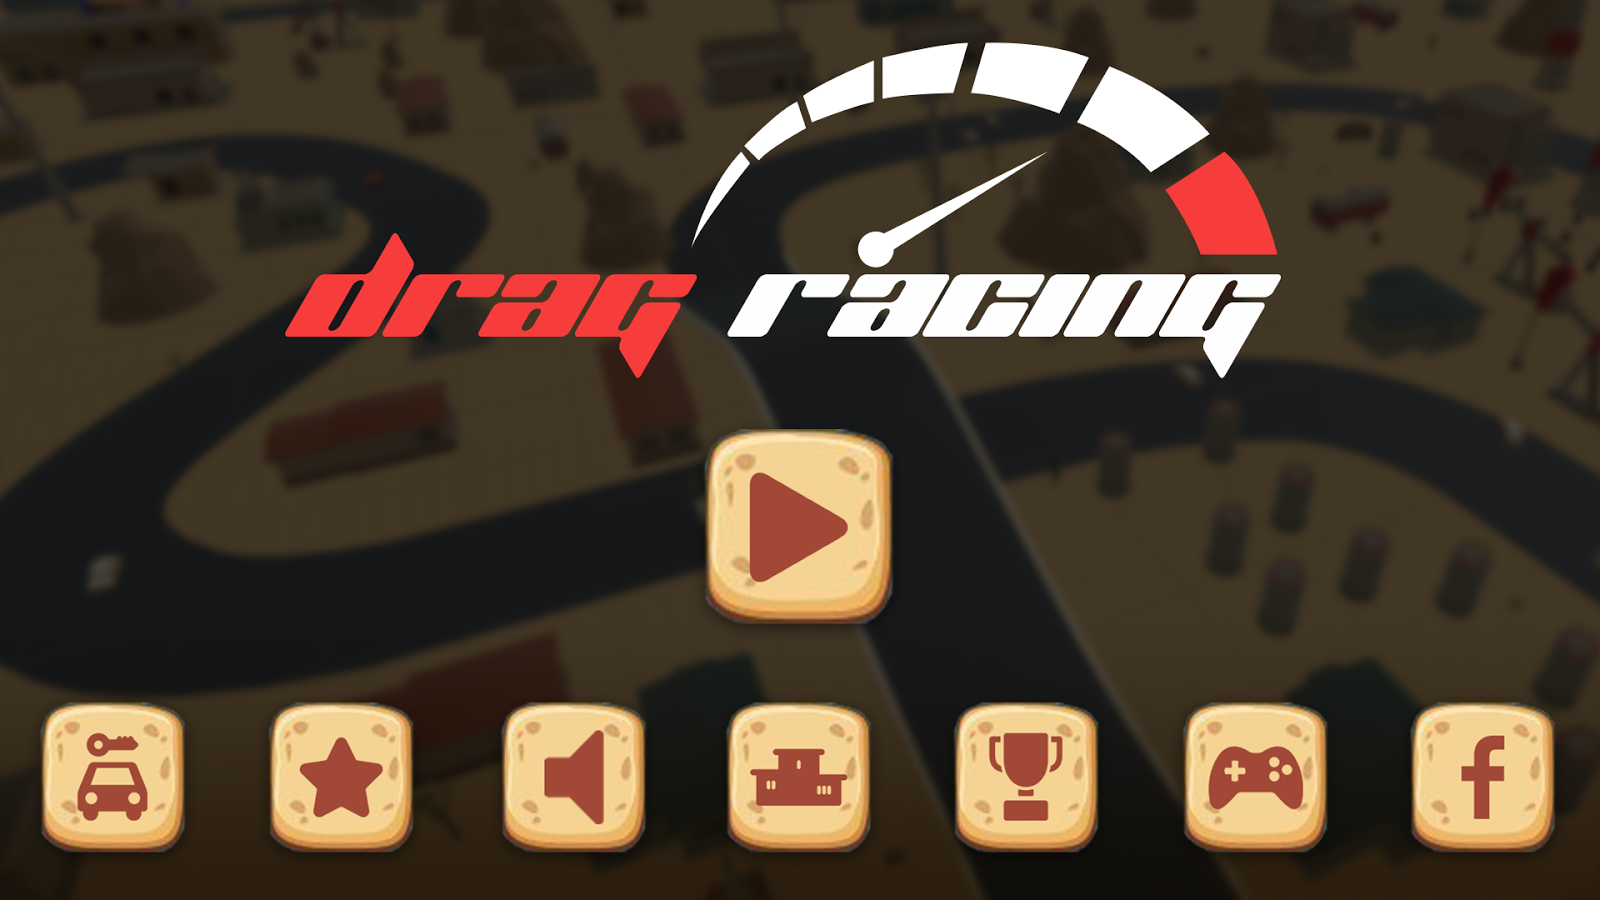 Drag Racing - car games 2017- screenshot